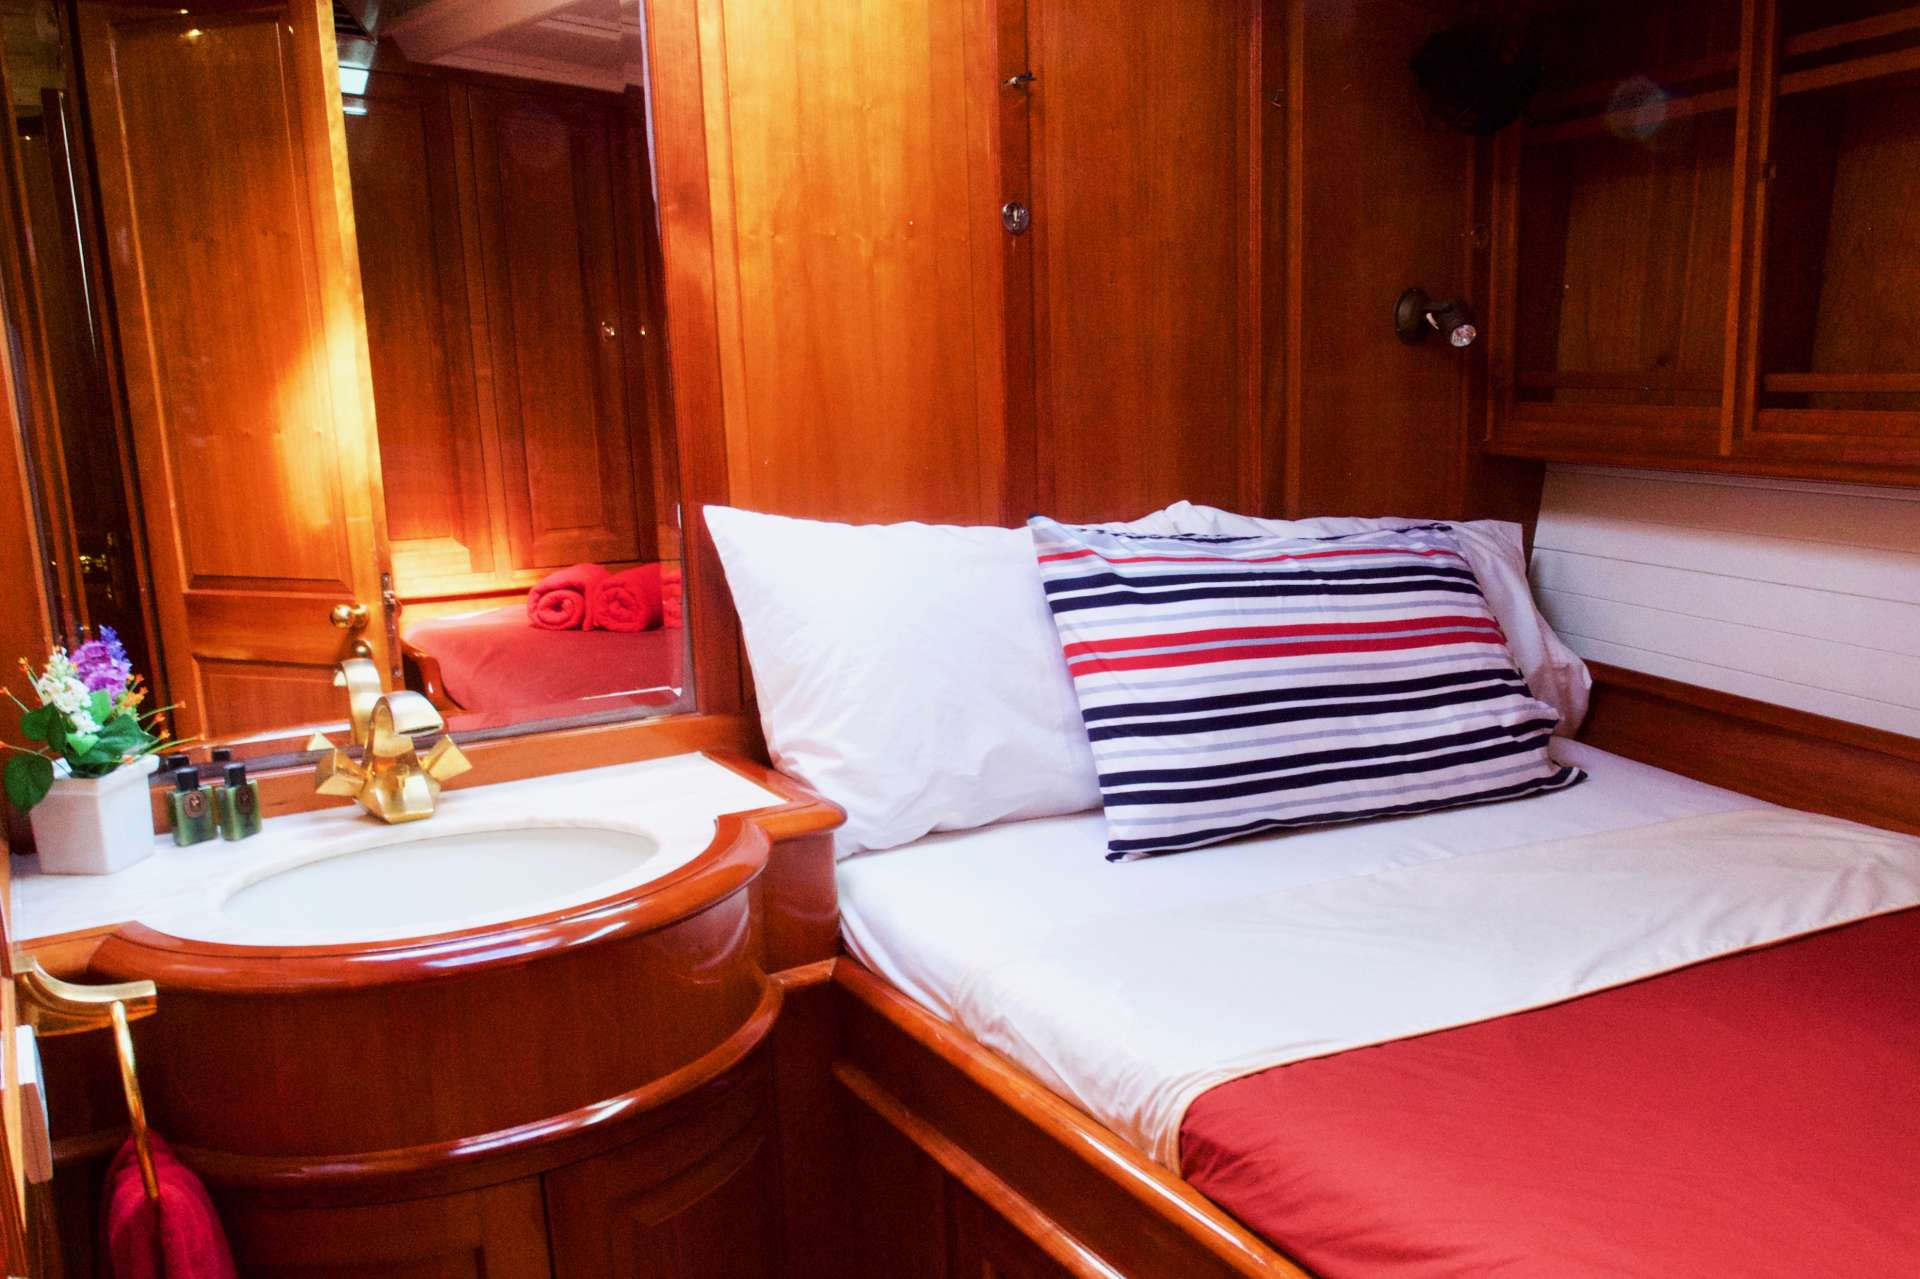 two beautifully finished guest cabins - one with a double bed and the other with 2 twin beds.